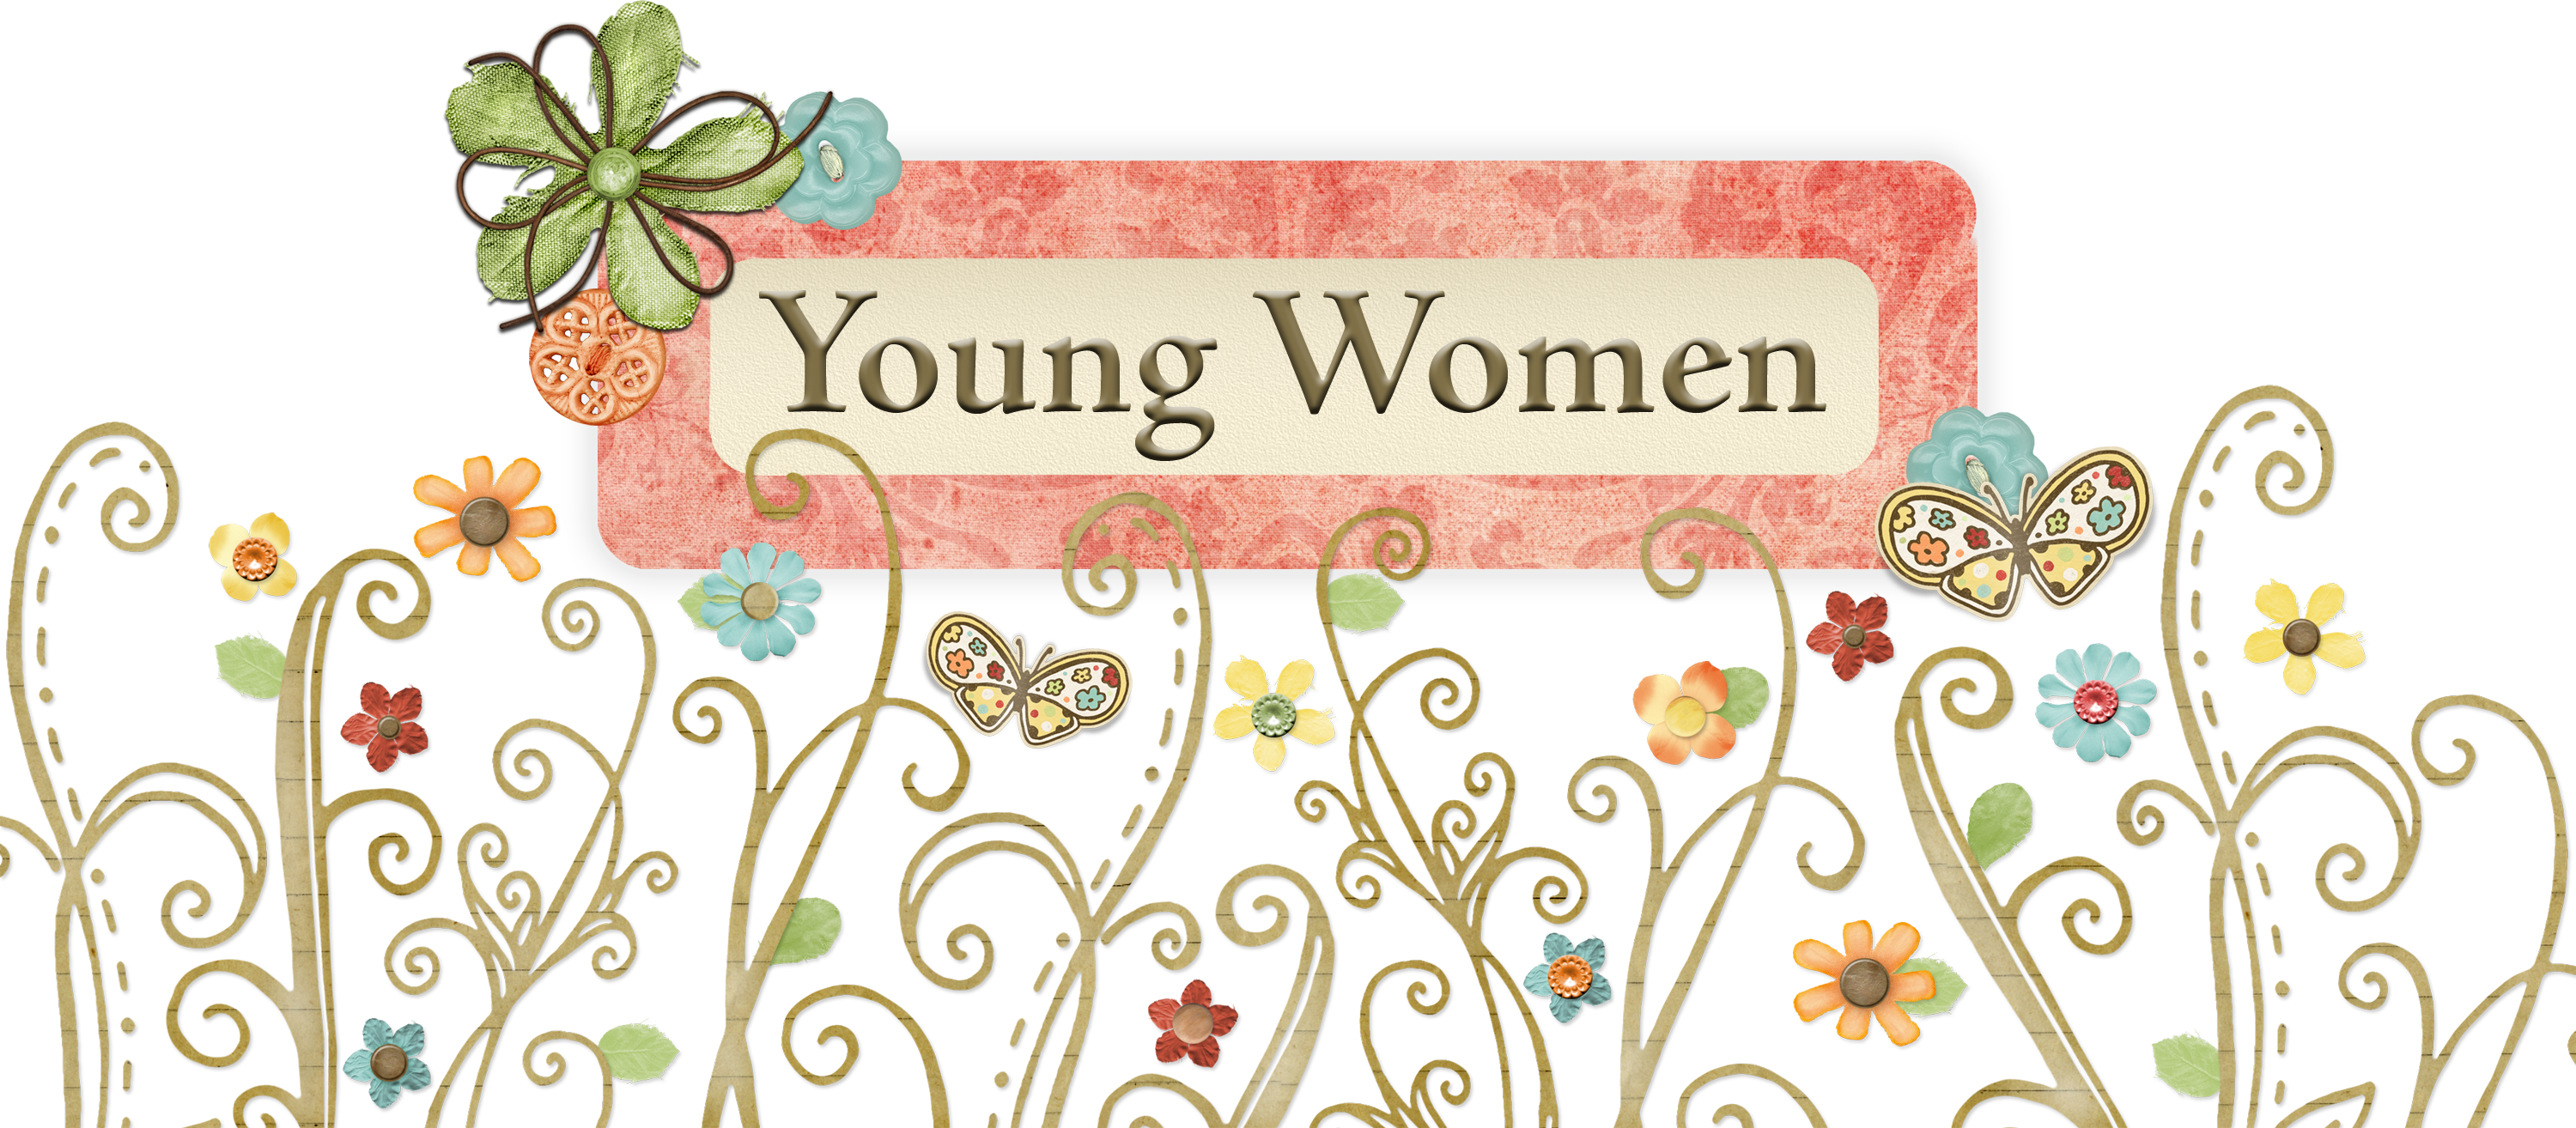 Free Young Woman Cliparts, Download Free Clip Art, Free Clip.